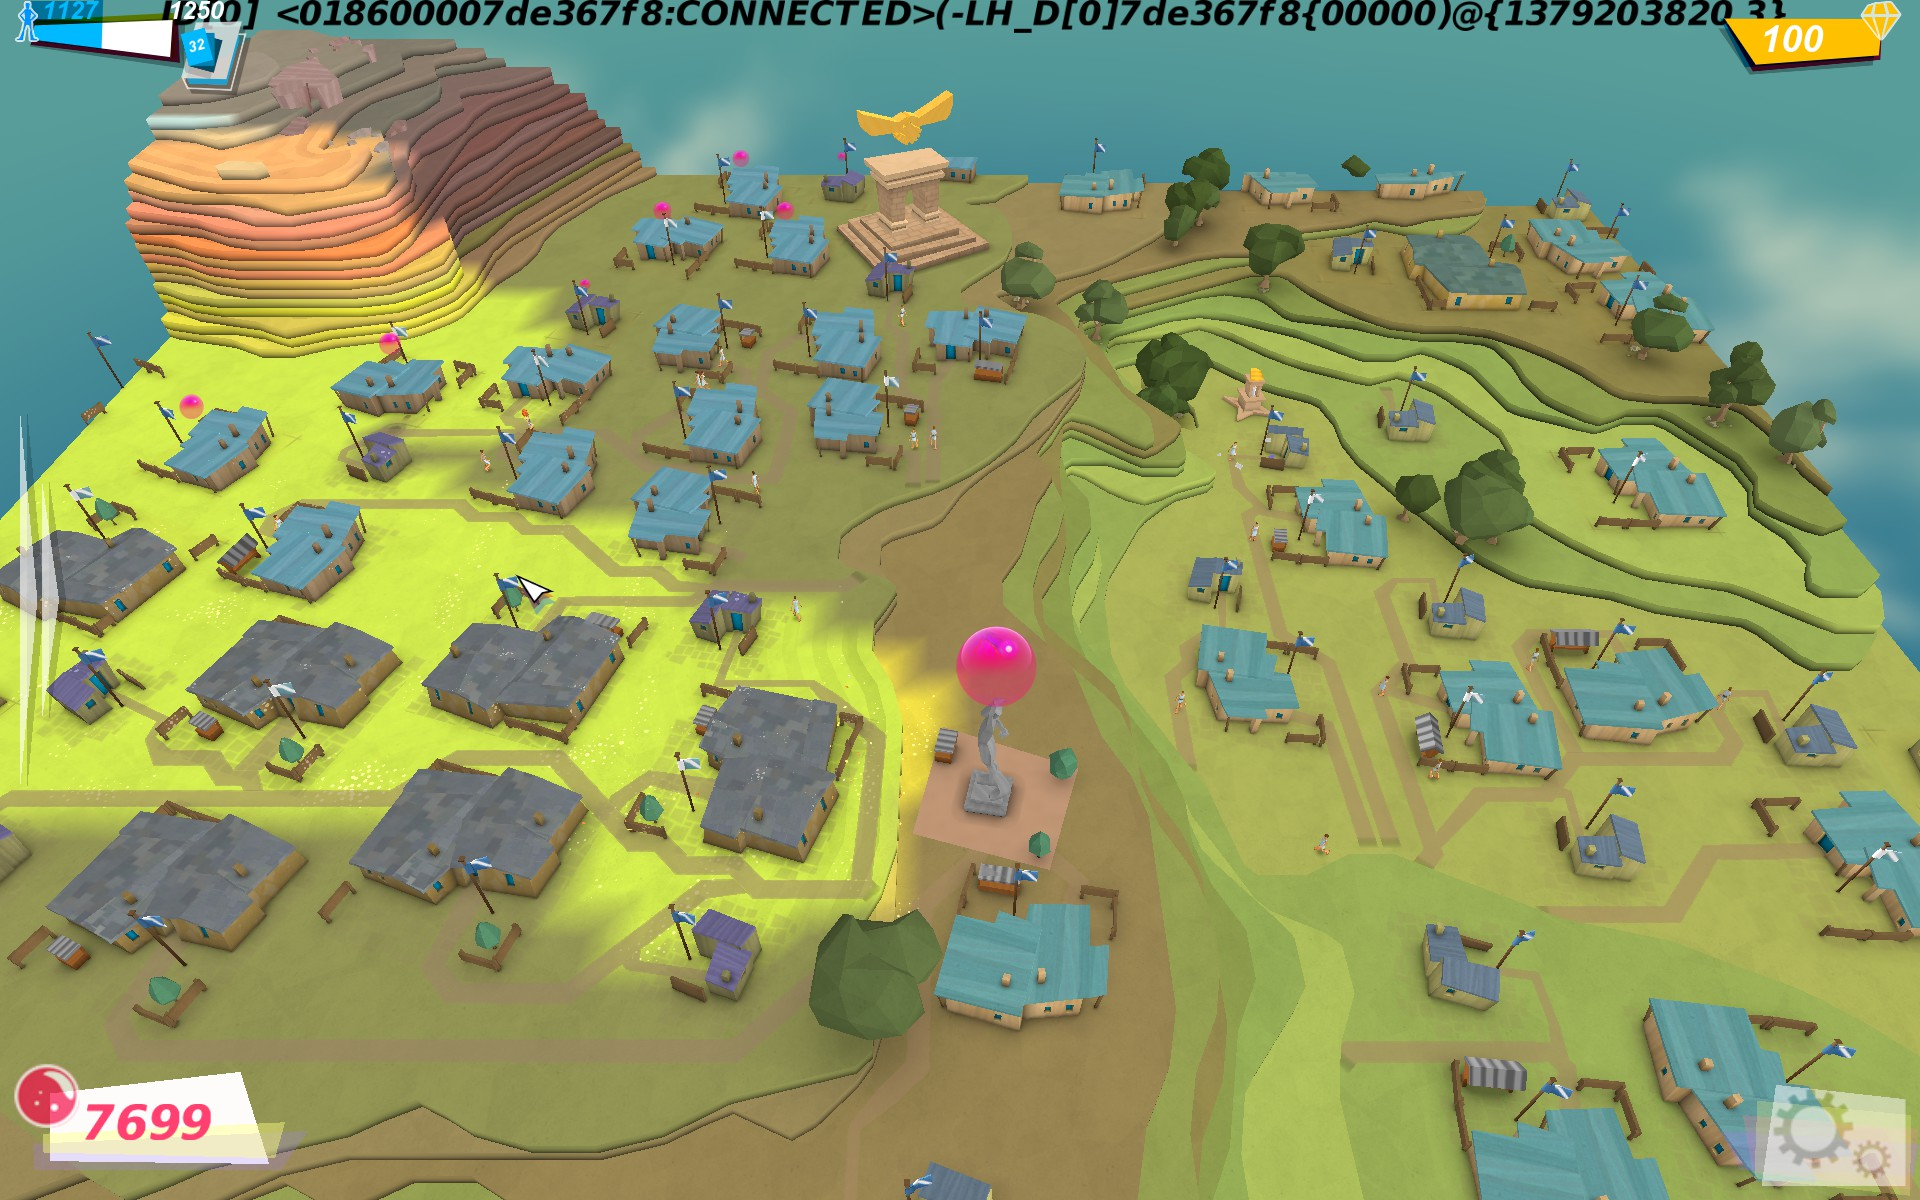 http://www.theaveragegamer.com/wp-content/uploads/2013/09/GODUS-Town-and-Statues.jpg